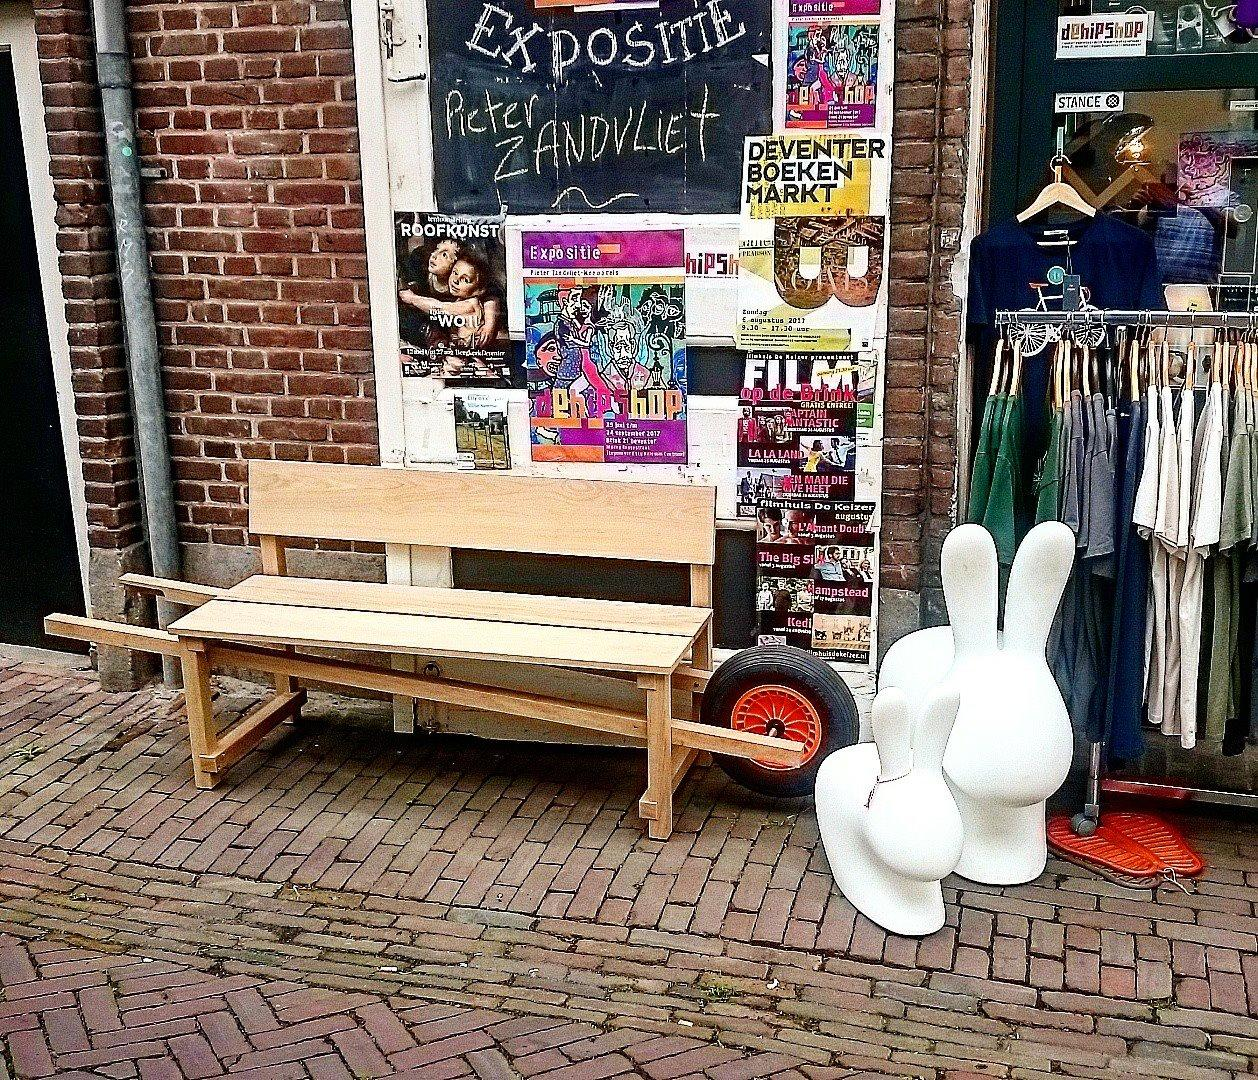 Photo De Hipshop en Deventer, Shopping, Mode, Cadeau, Art de vivre - #5